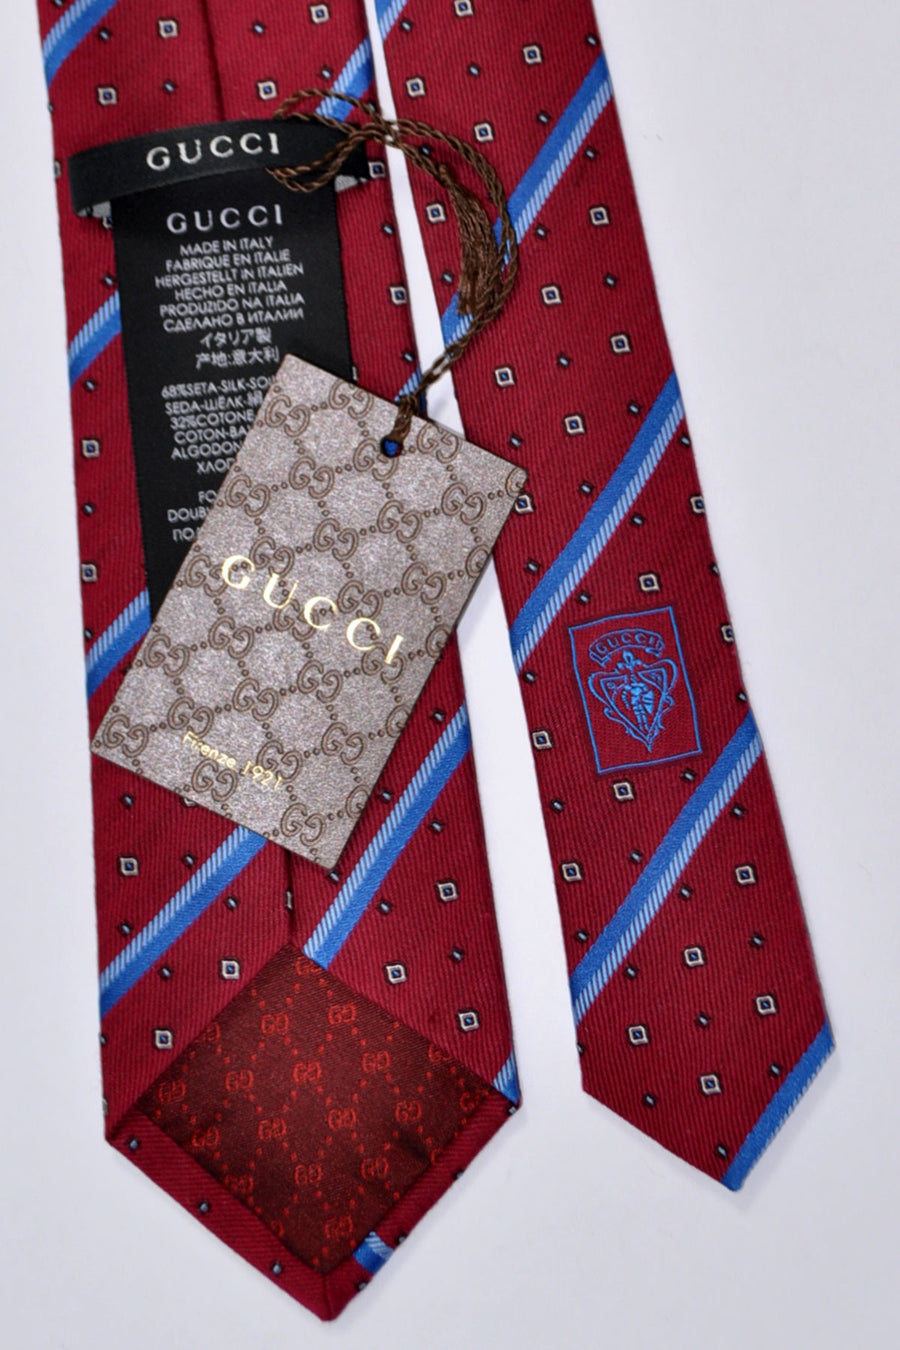 Silk Gucci Ties